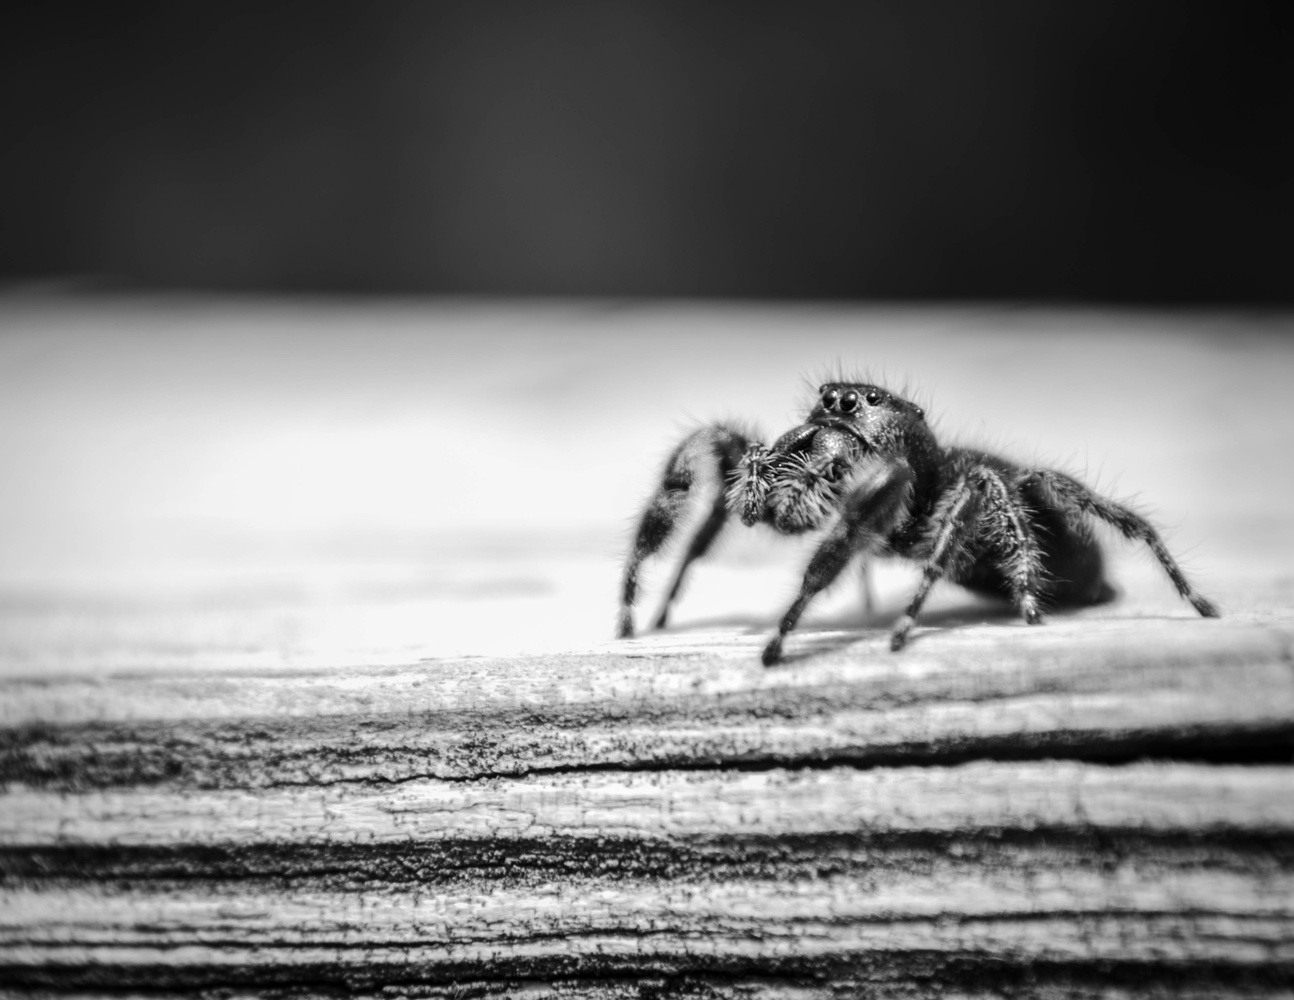 Jumping Spider by Nathan Ruby